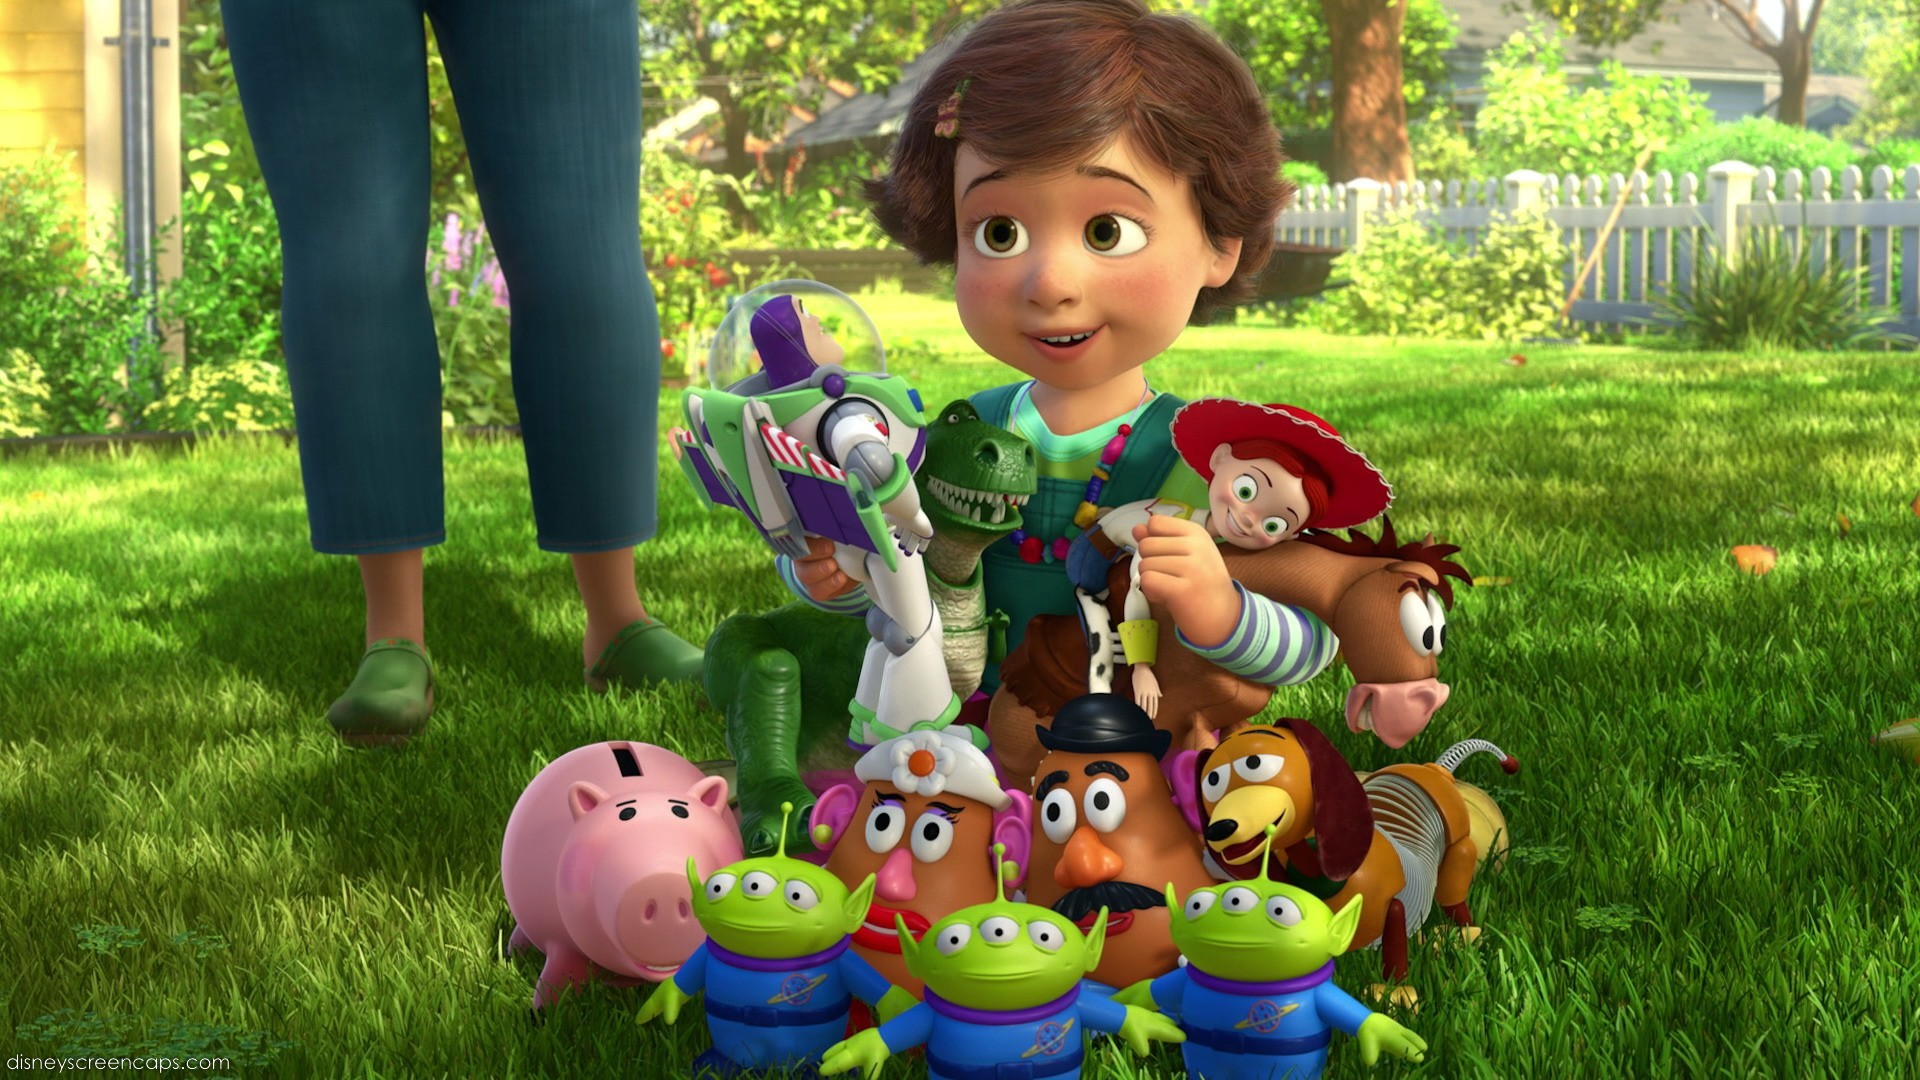 Toy Story 4 Cast : Toy story release date cast trailer characters and plot